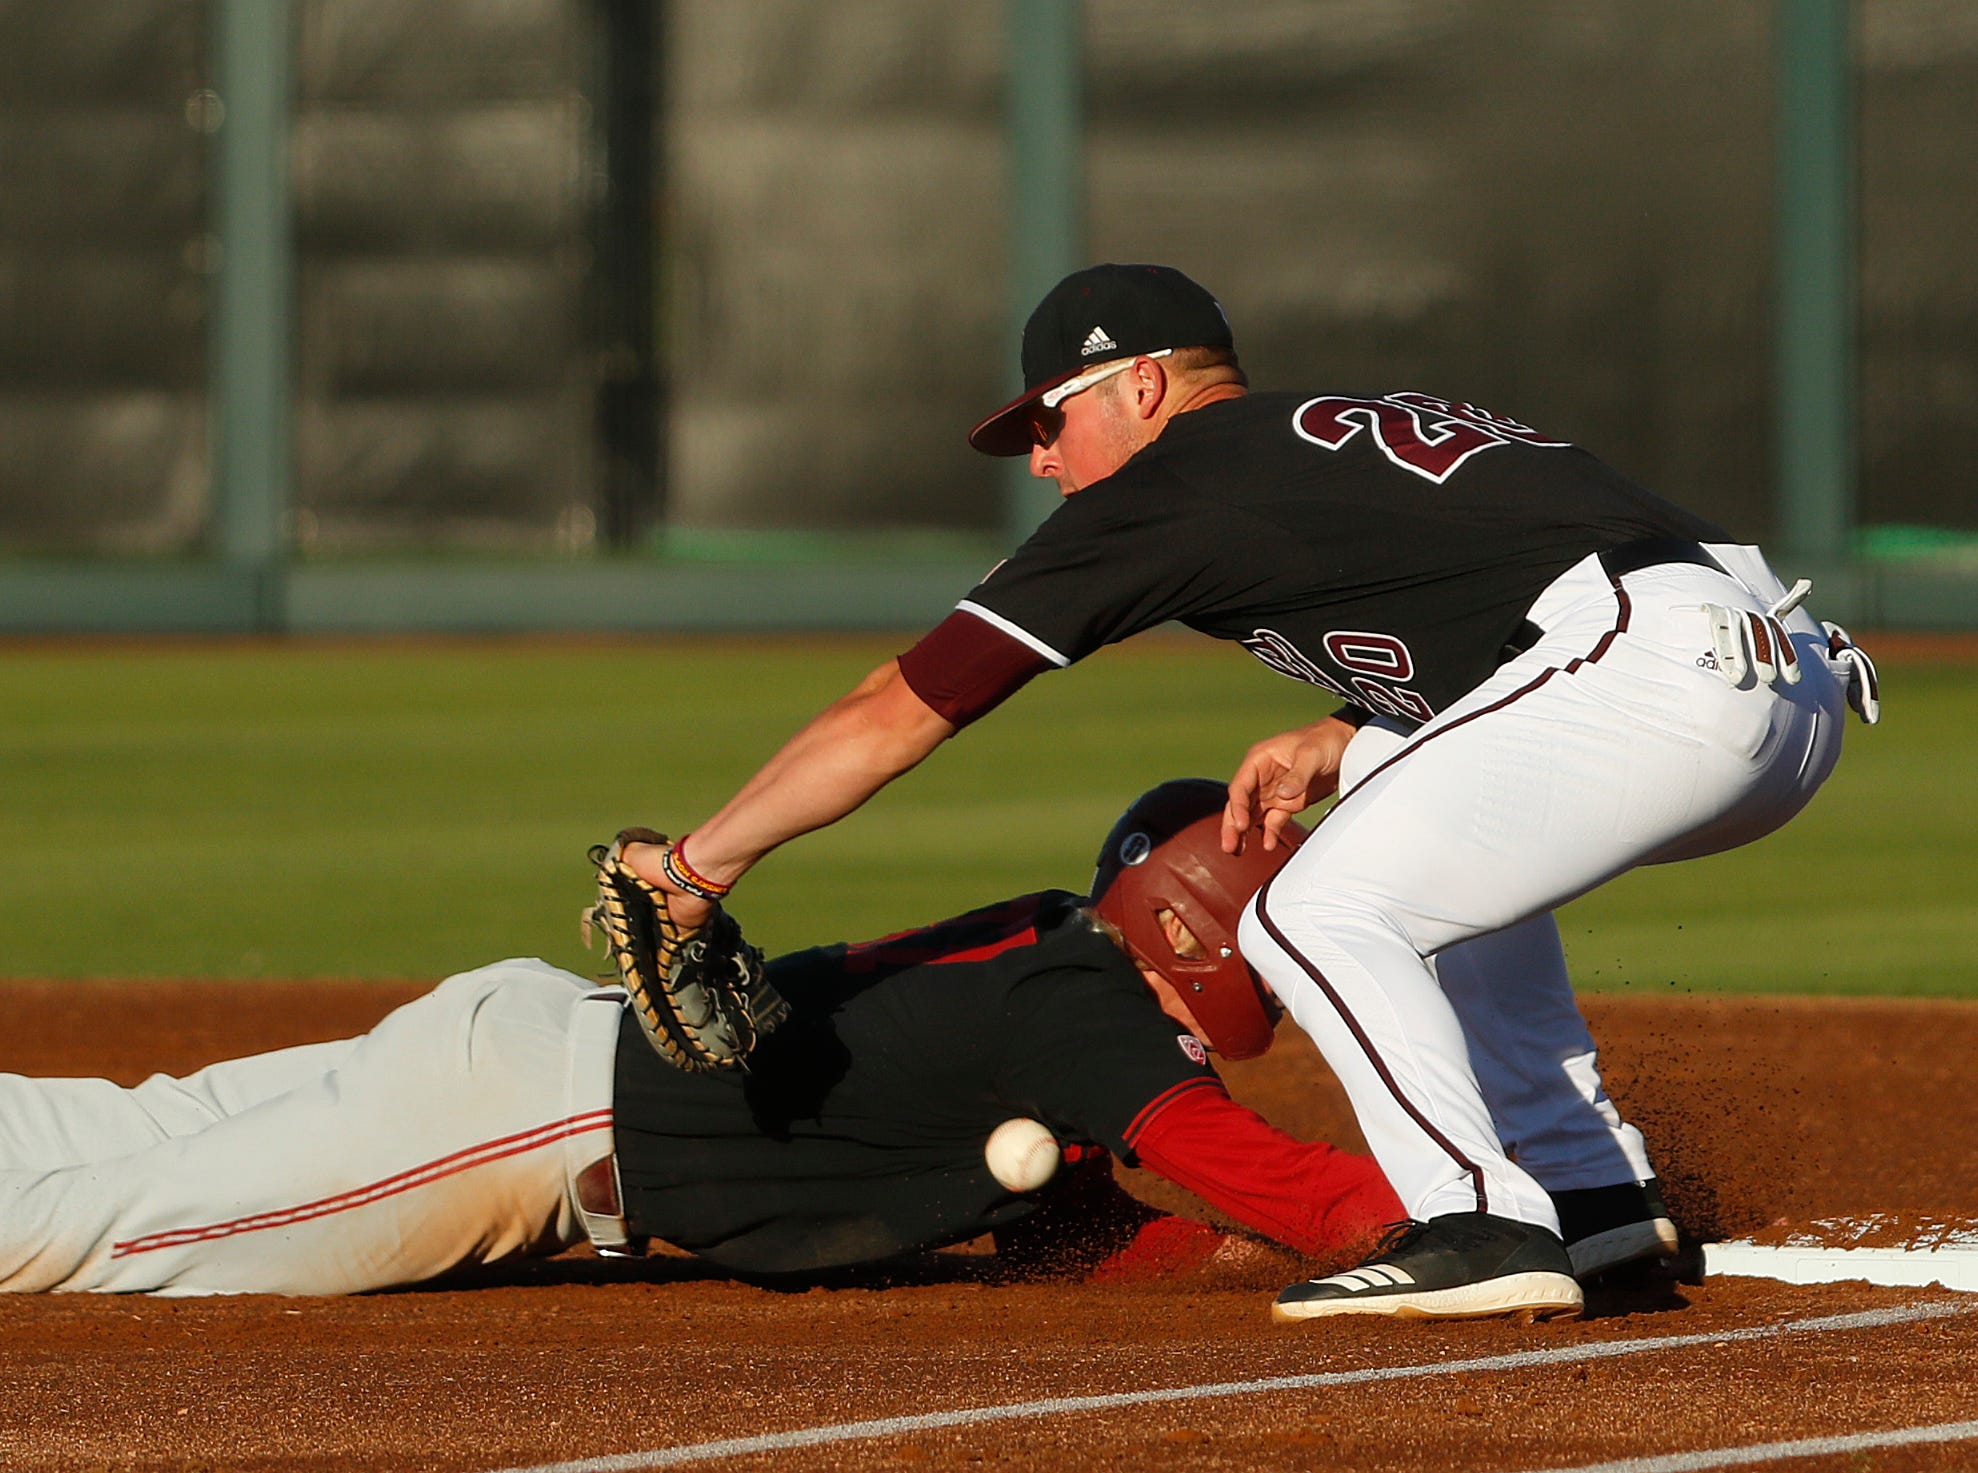 Standford's Kyle Stowers (37) slides safely back into first before a tag from ASU's Spencer Torkelson (20) during the first inning at Phoenix Municipal Stadium in Phoenix, Ariz. on May 23, 2019.